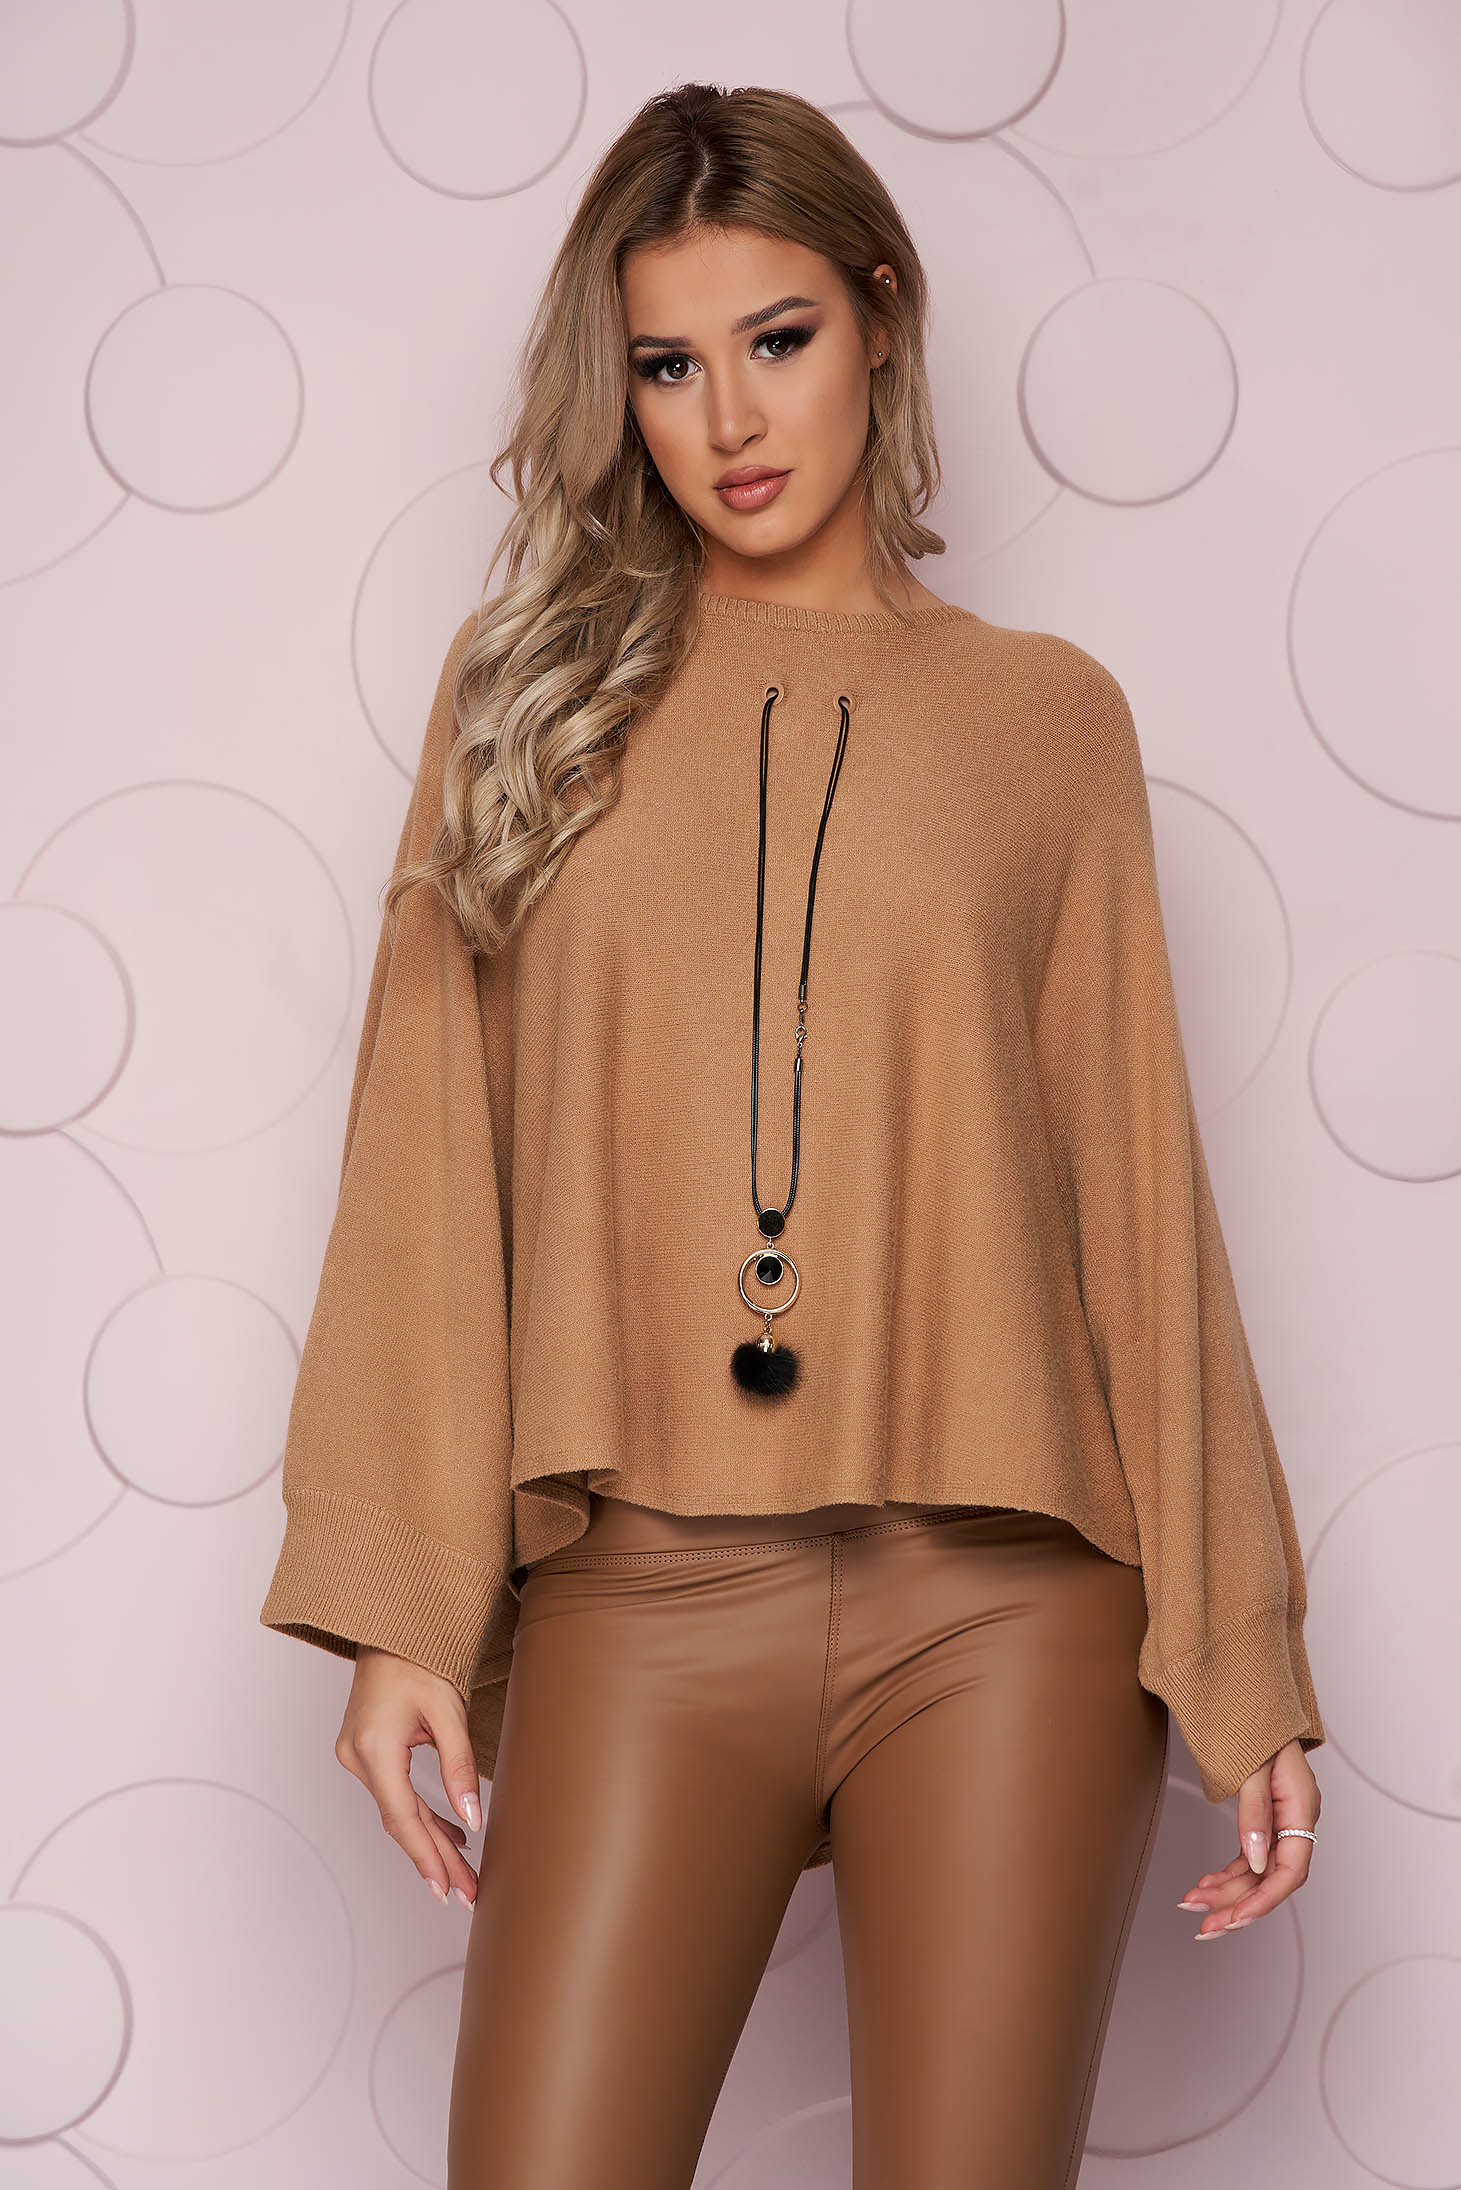 Cream sweater loose fit knitted fabric from elastic fabric casual accesorised with necklace